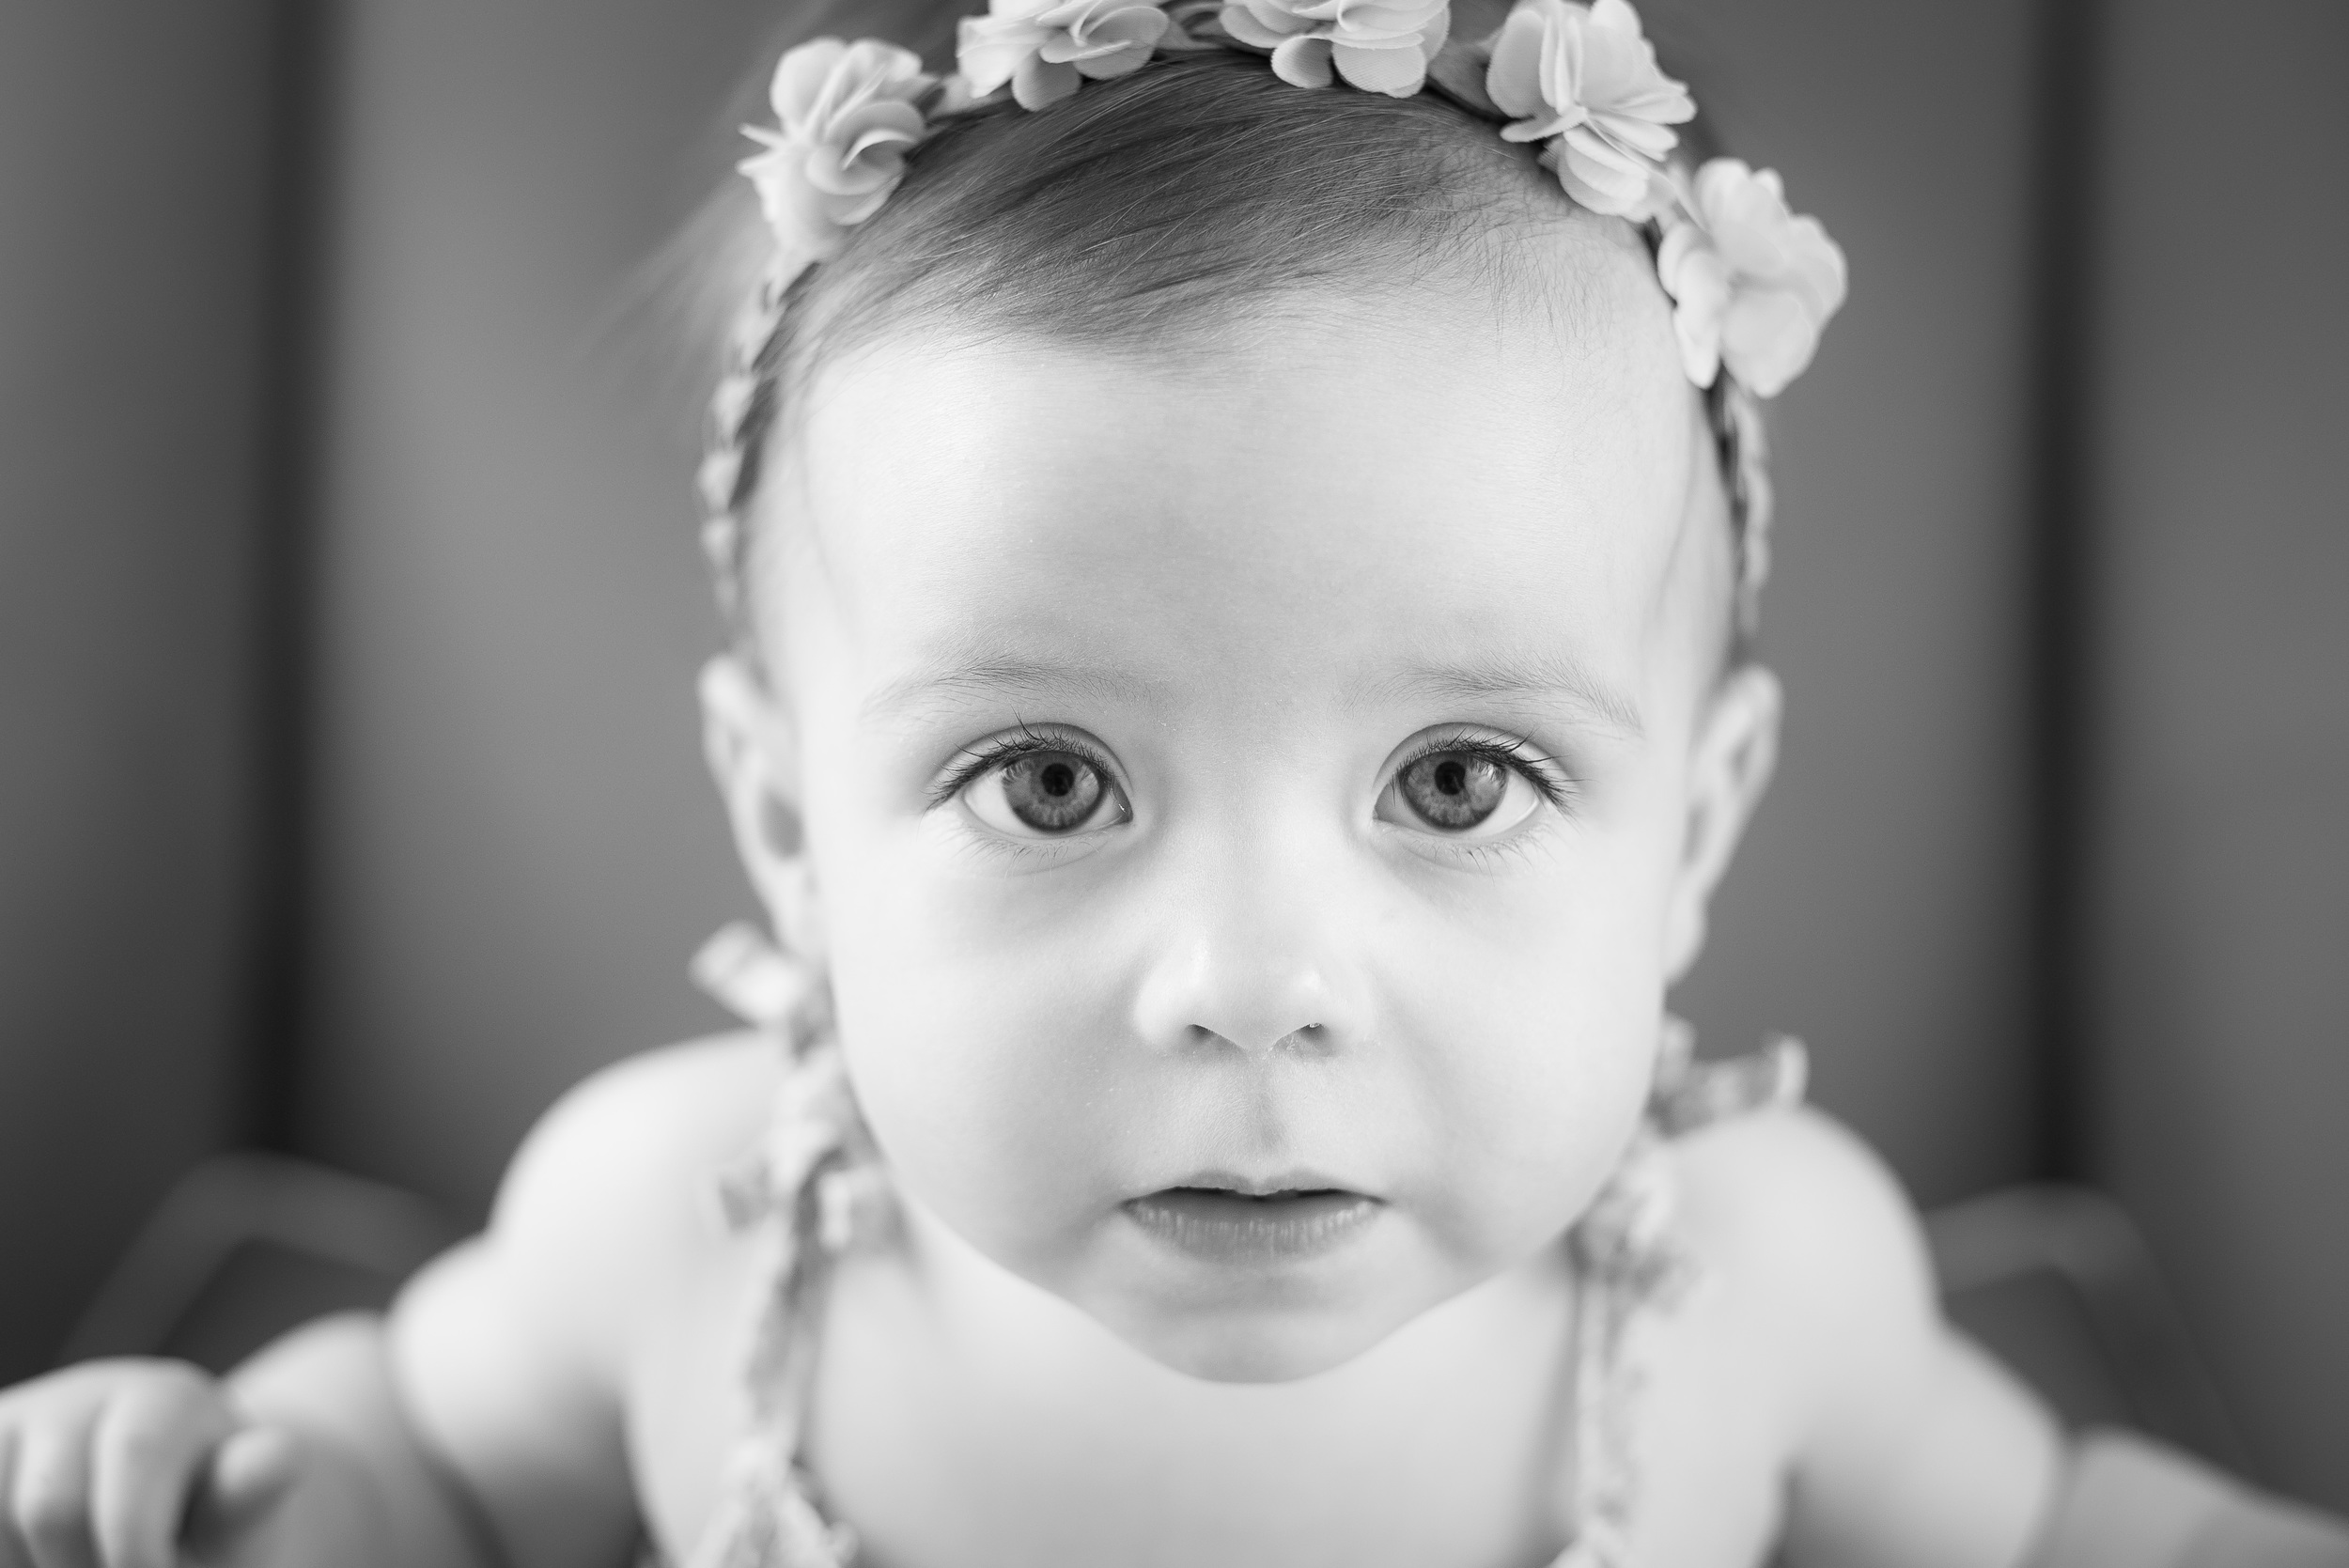 baby_claire_cary_portrait_kids_child